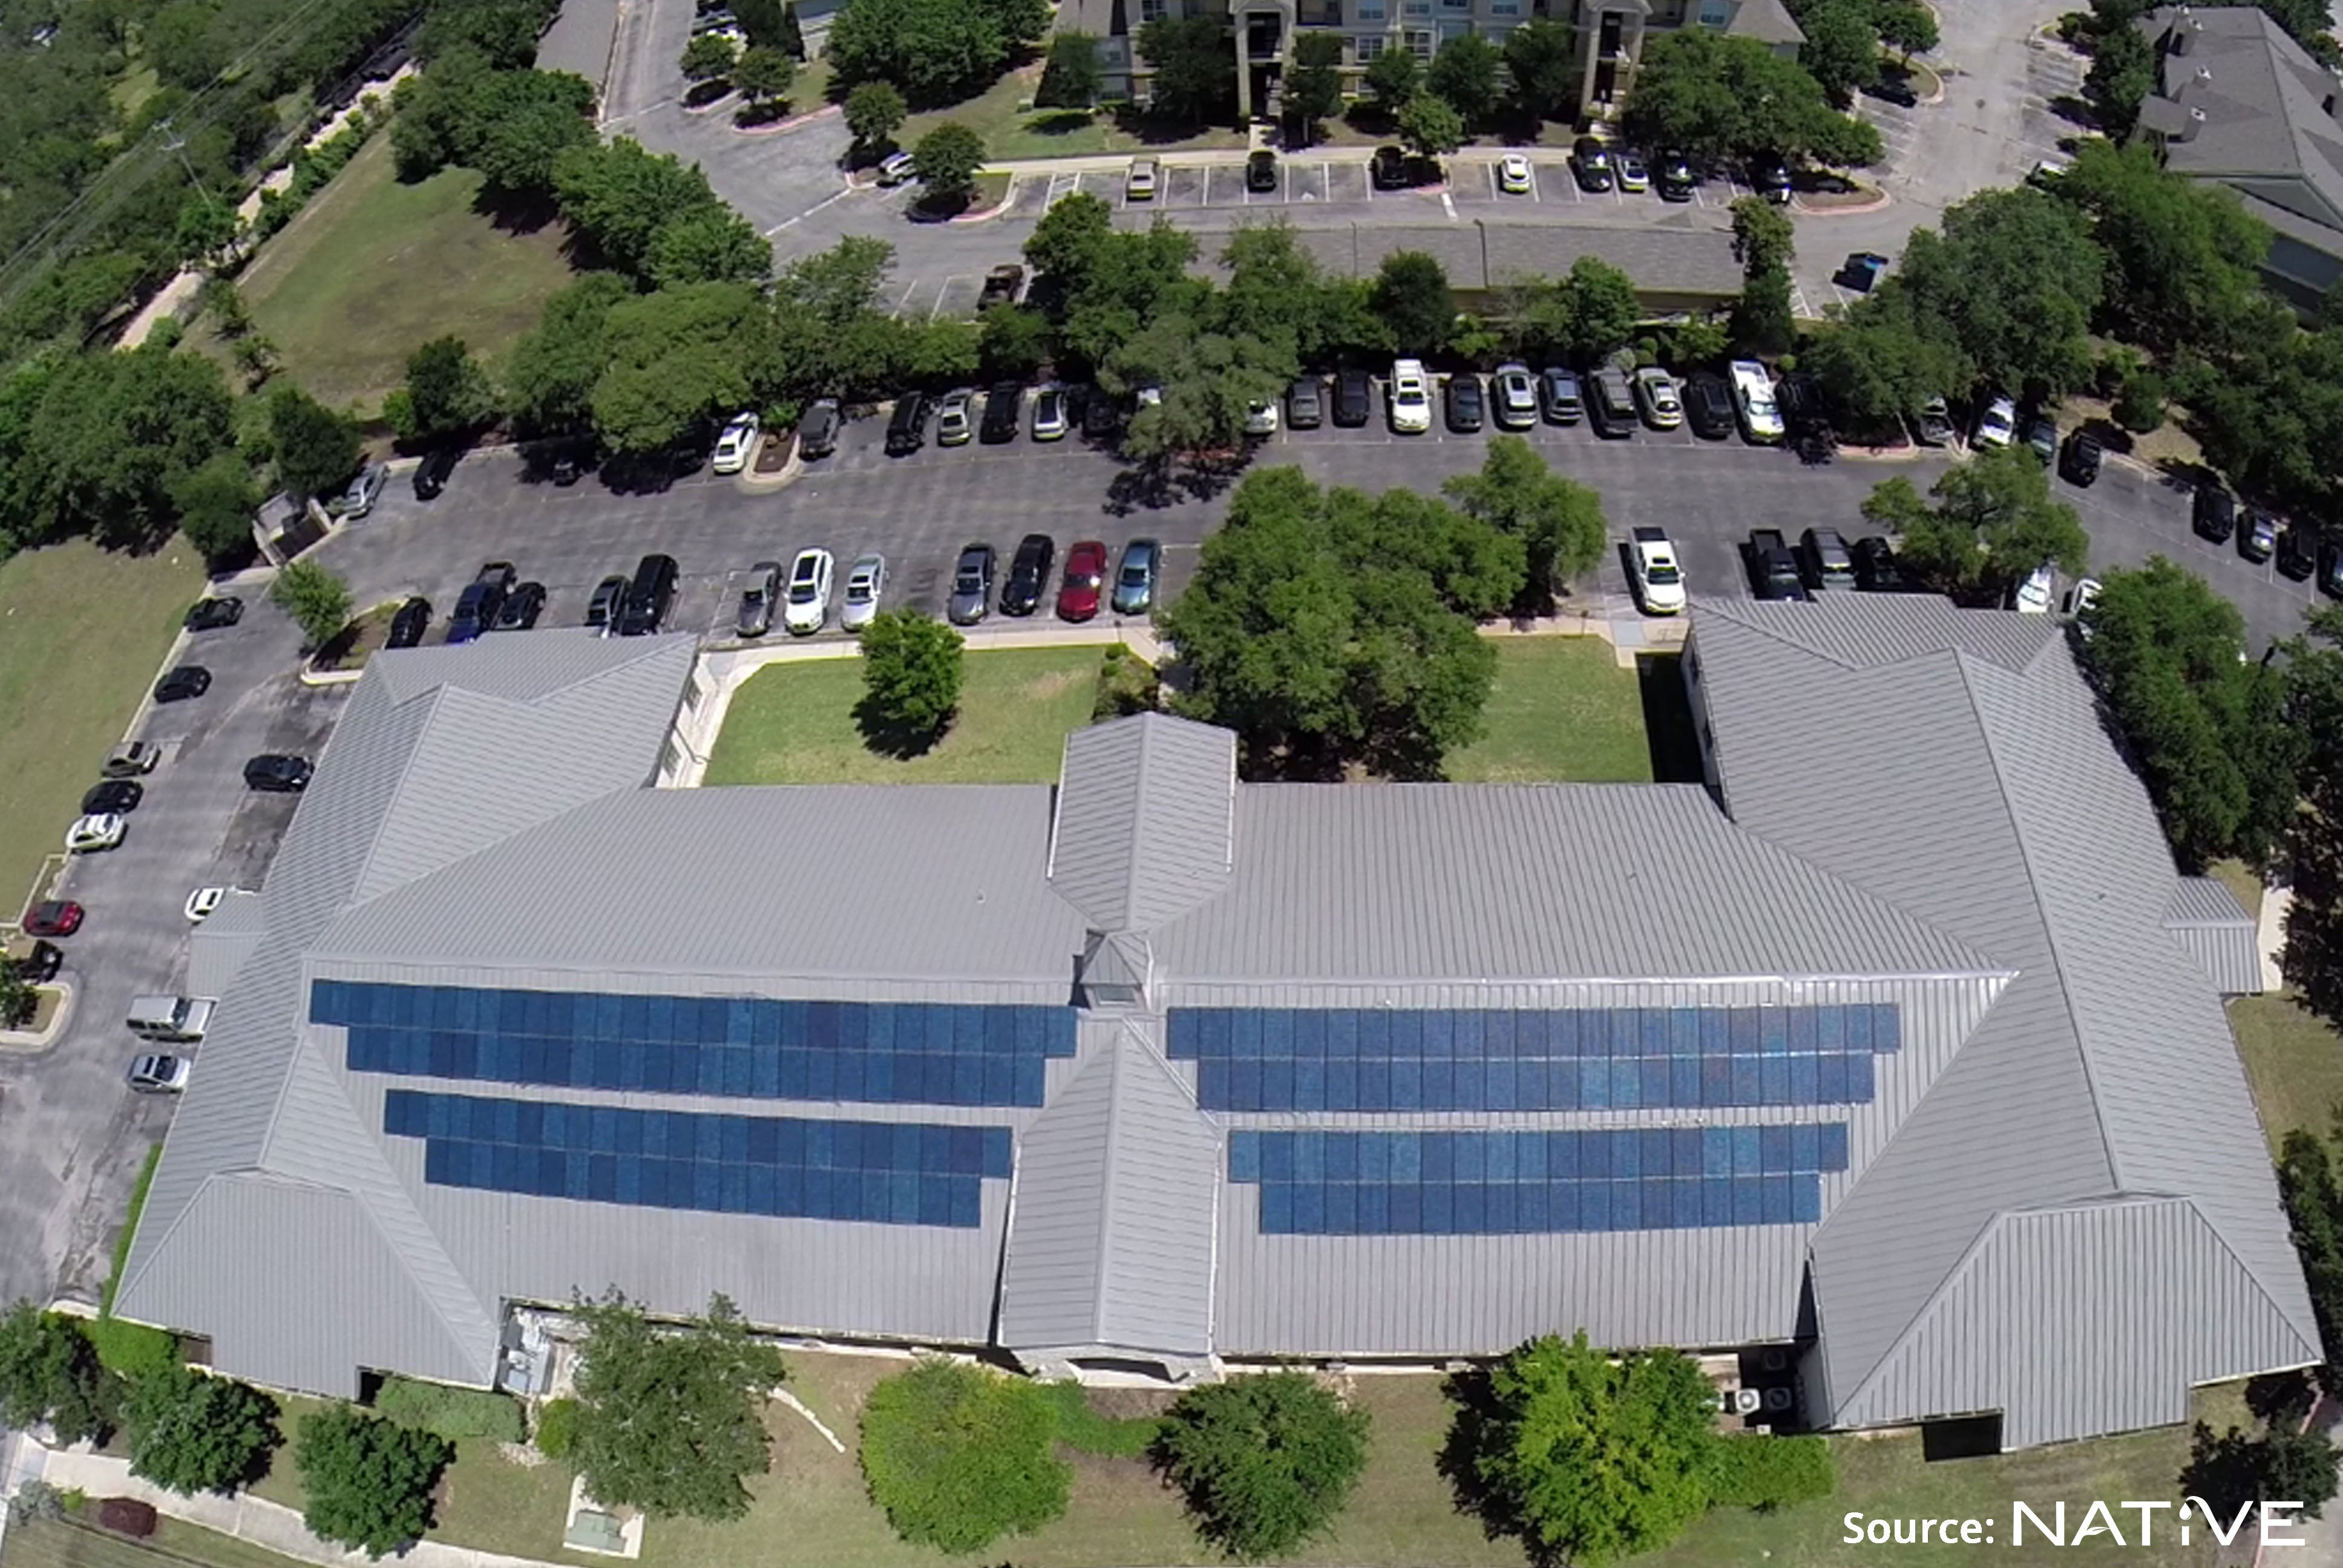 NATiVE Solar Panels for Business